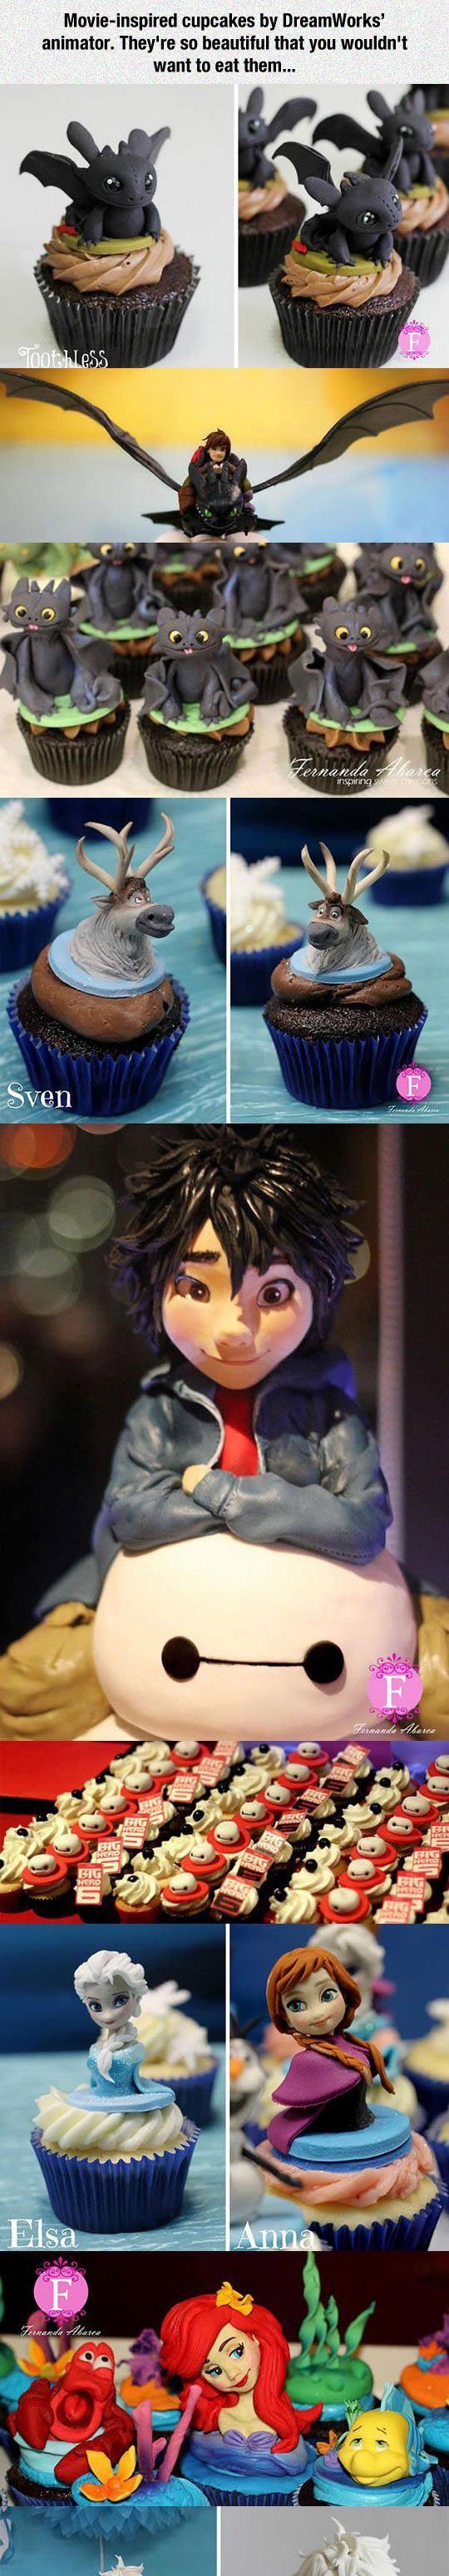 Movie-Inspired Cupcakes By DreamWorks Animator